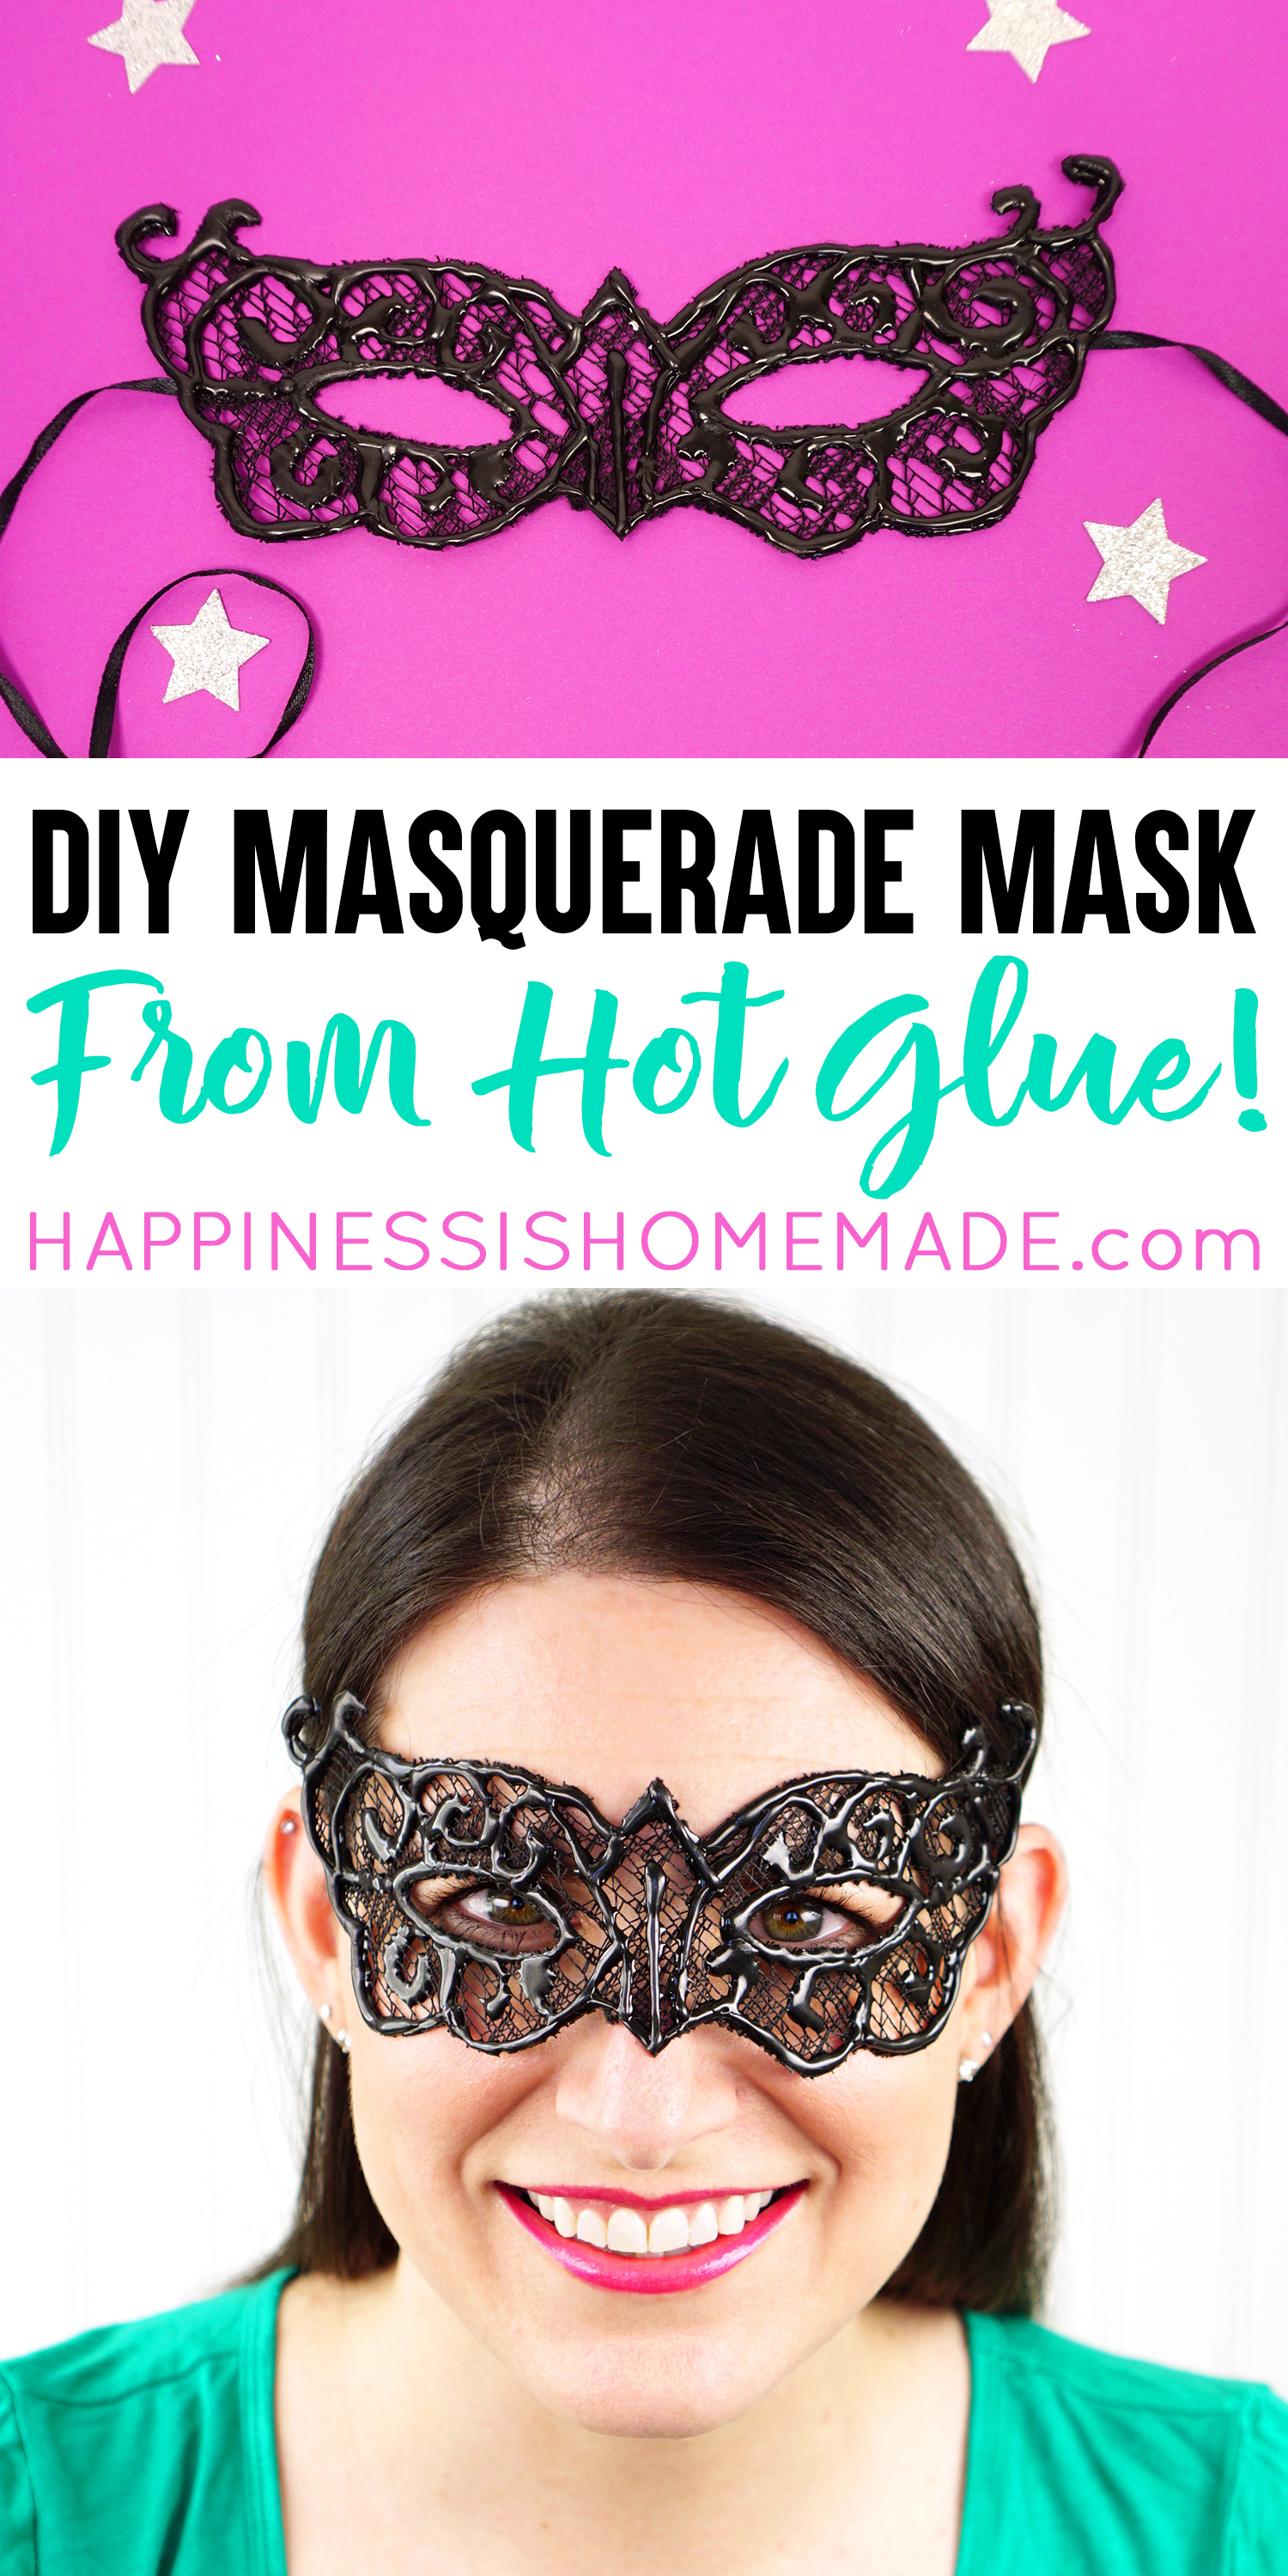 Easy Diy Lace Masquerade Mask From Hot Glue Happiness Is Homemade